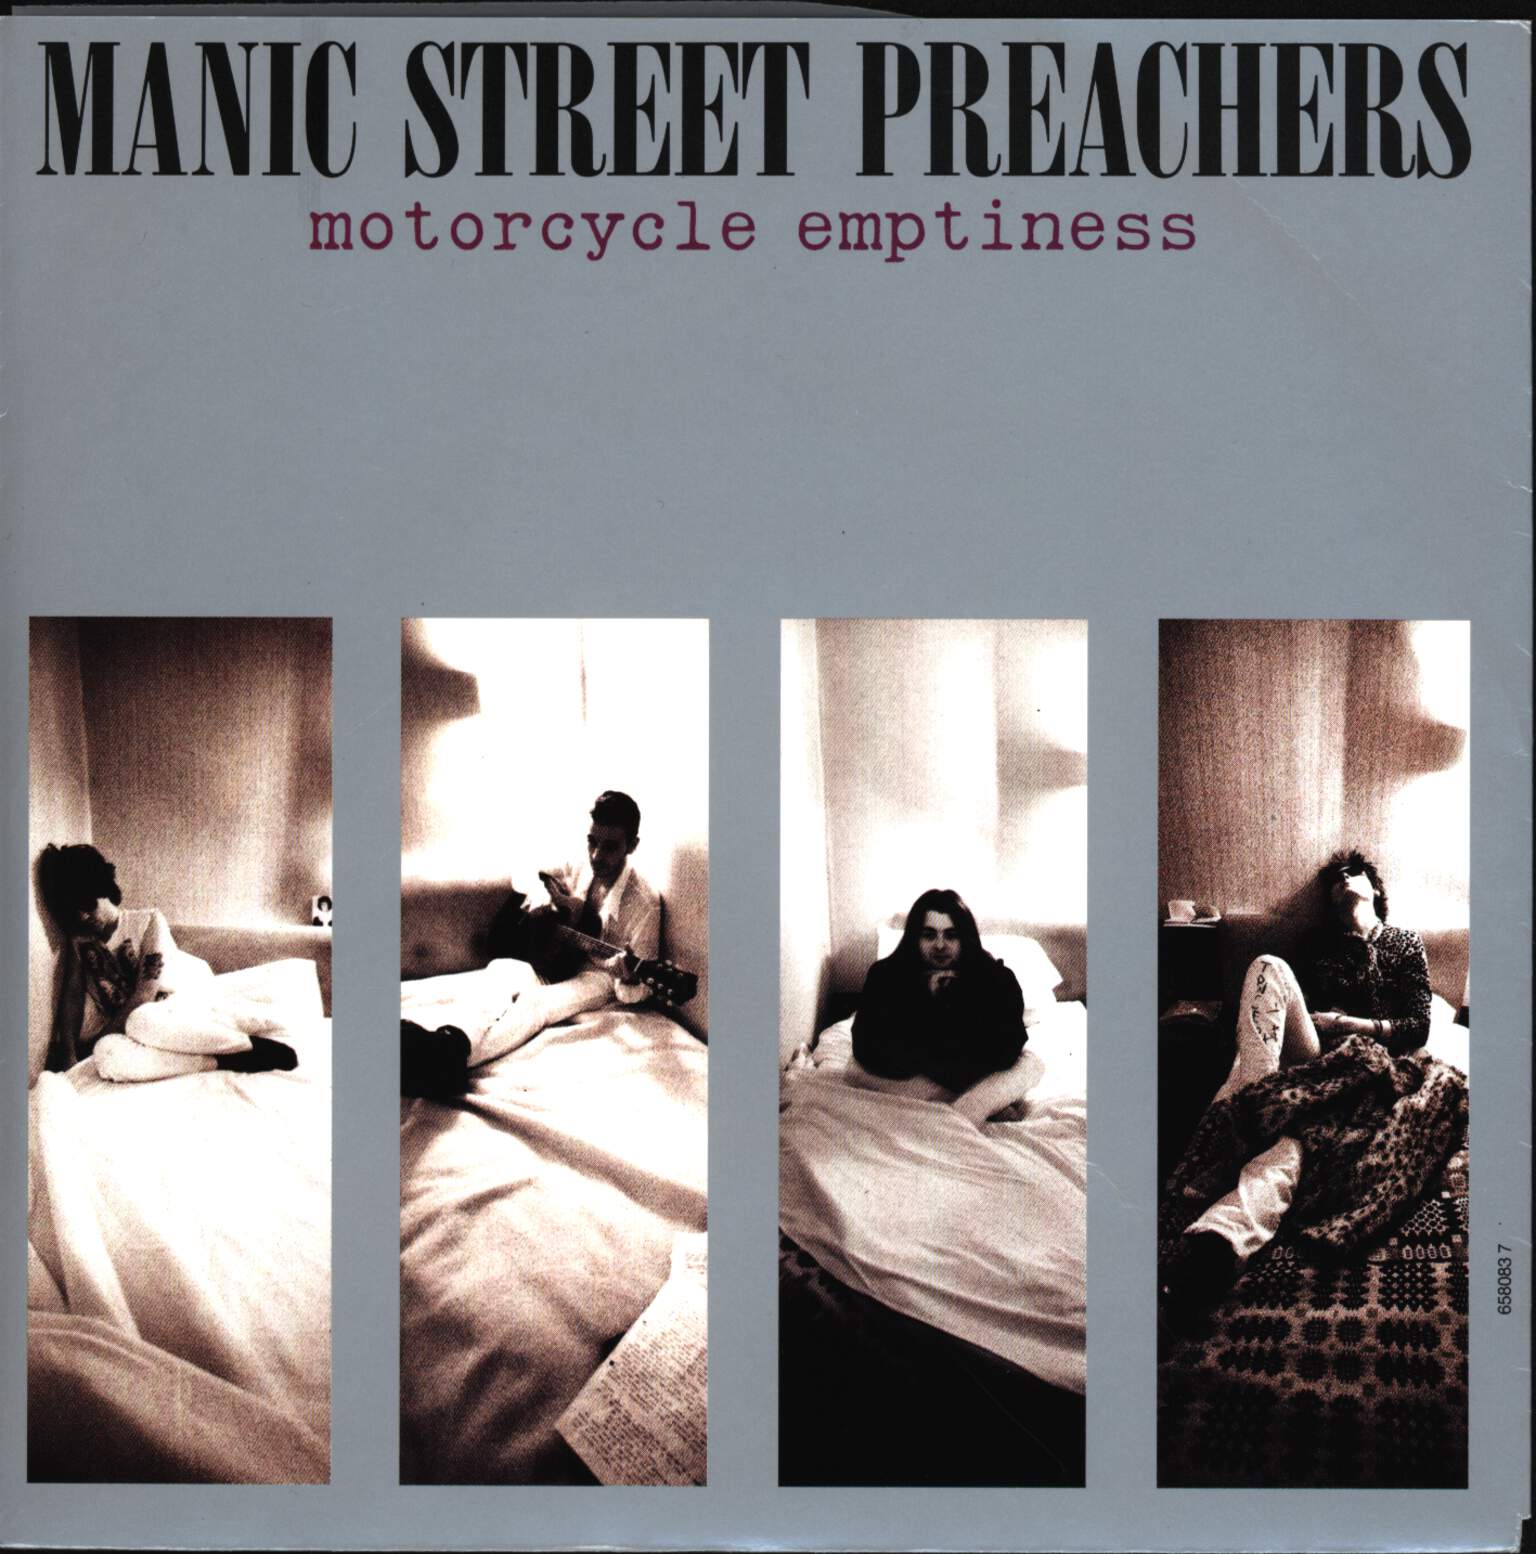 "Manic Street Preachers: Motorcycle Emptiness, 7"" Single (Vinyl)"